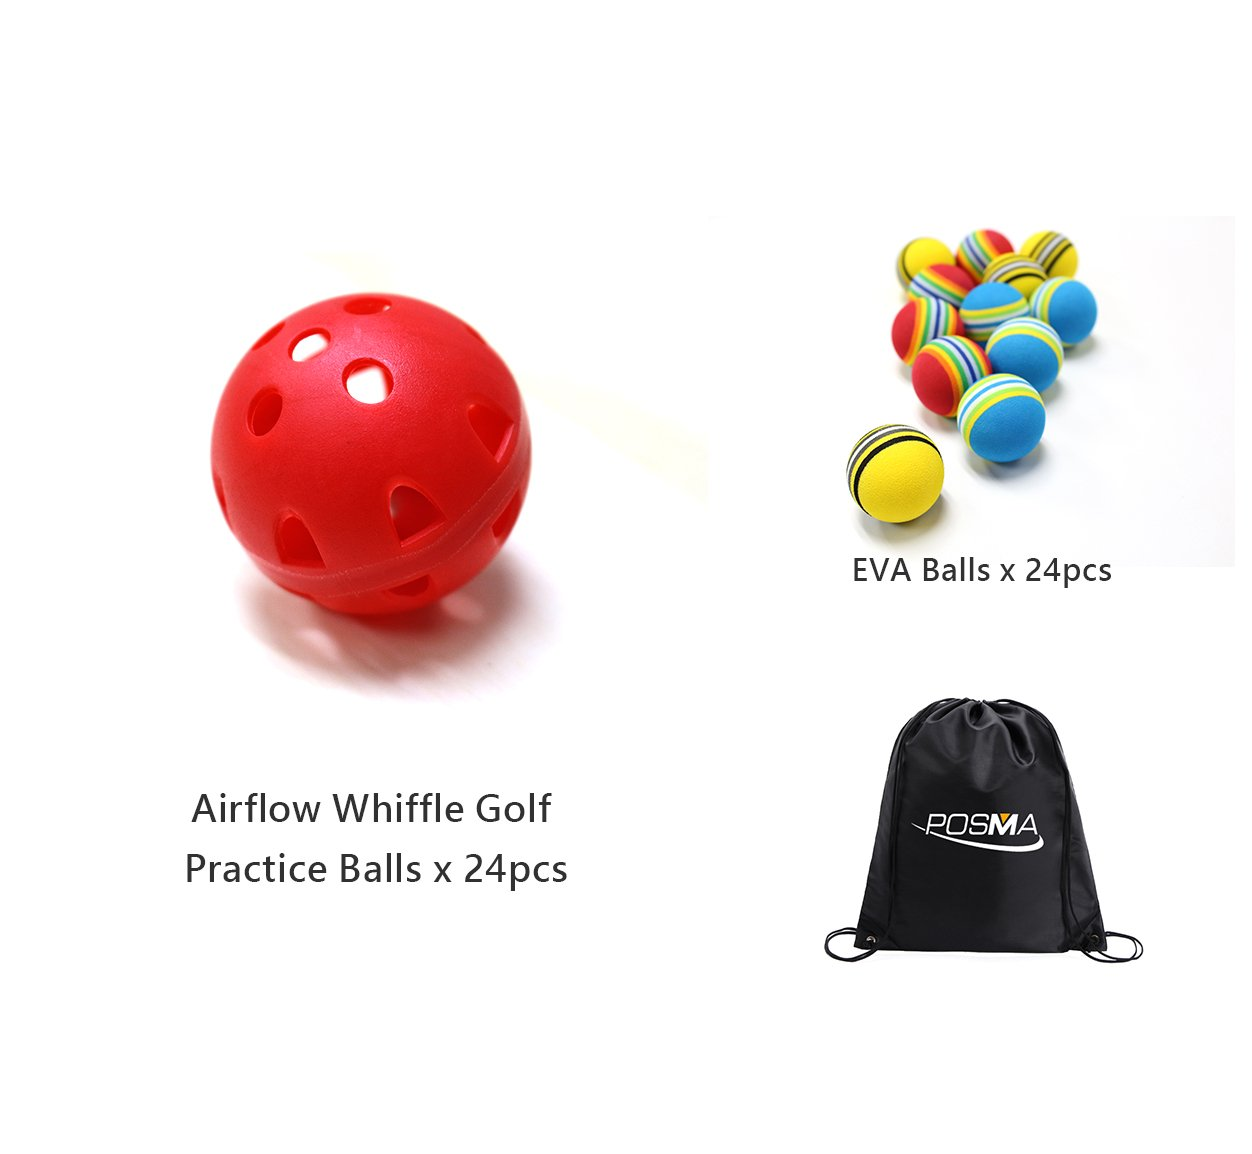 POSMA PB070A 24pcs Airflow Whiffle Golf Practice Ball Bundle Set with 24pcs Golf EVA Balls + 1pc Cinch Sack Carry Bag Golf Training Aid Chipping Hitting Trainer